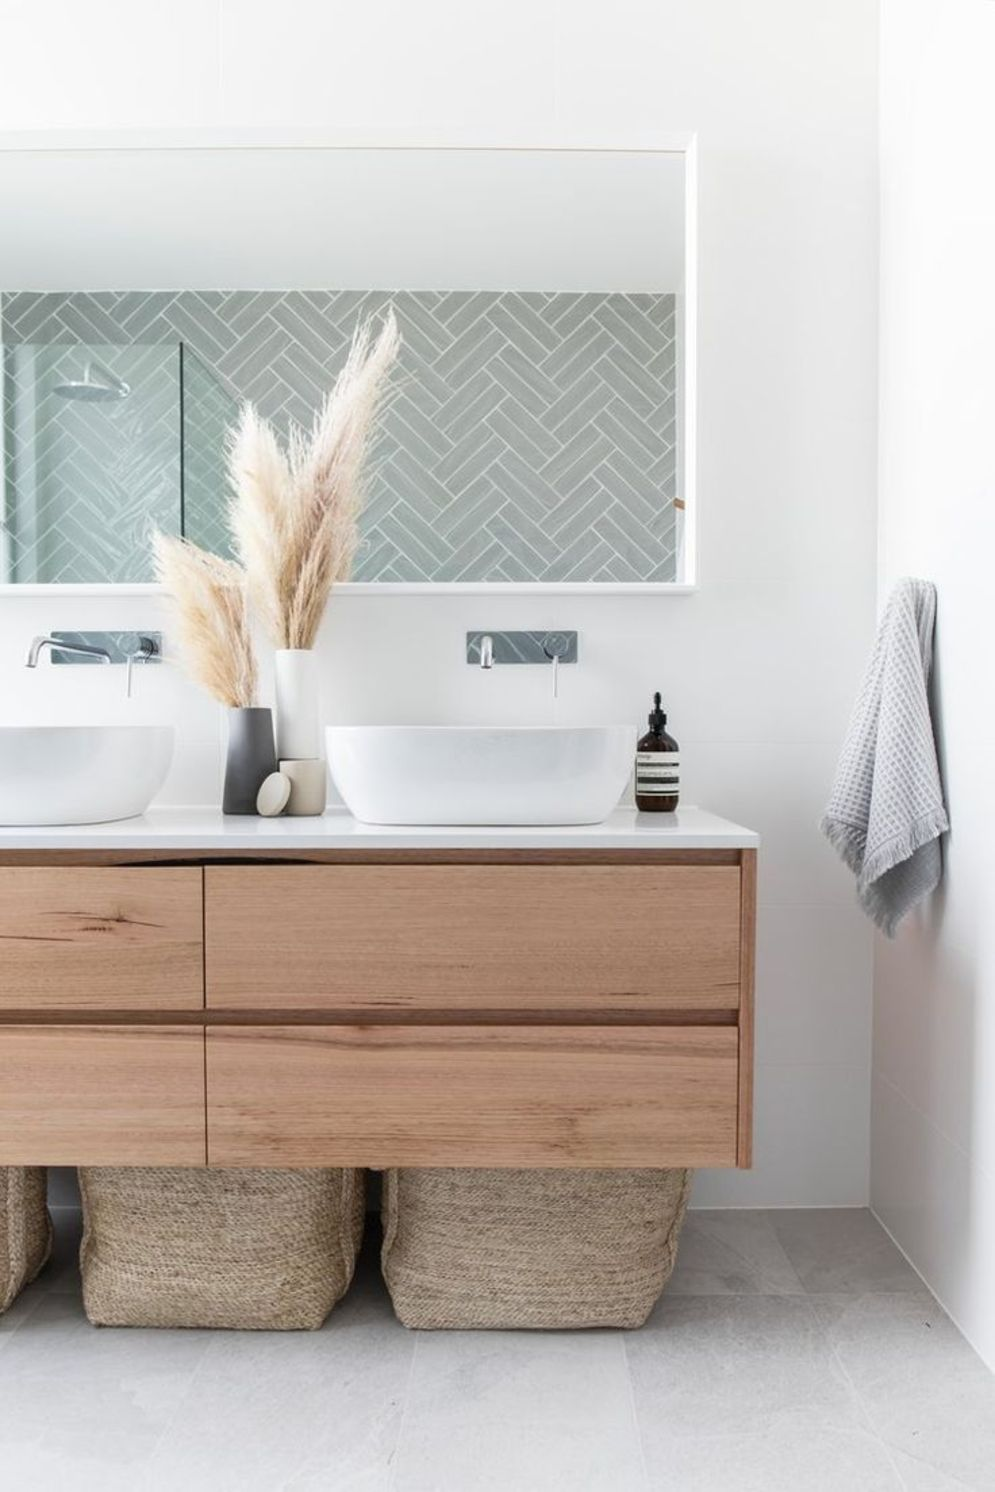 Most savvy bathroom designs with elegant wood finish to give more natural feel Image 11